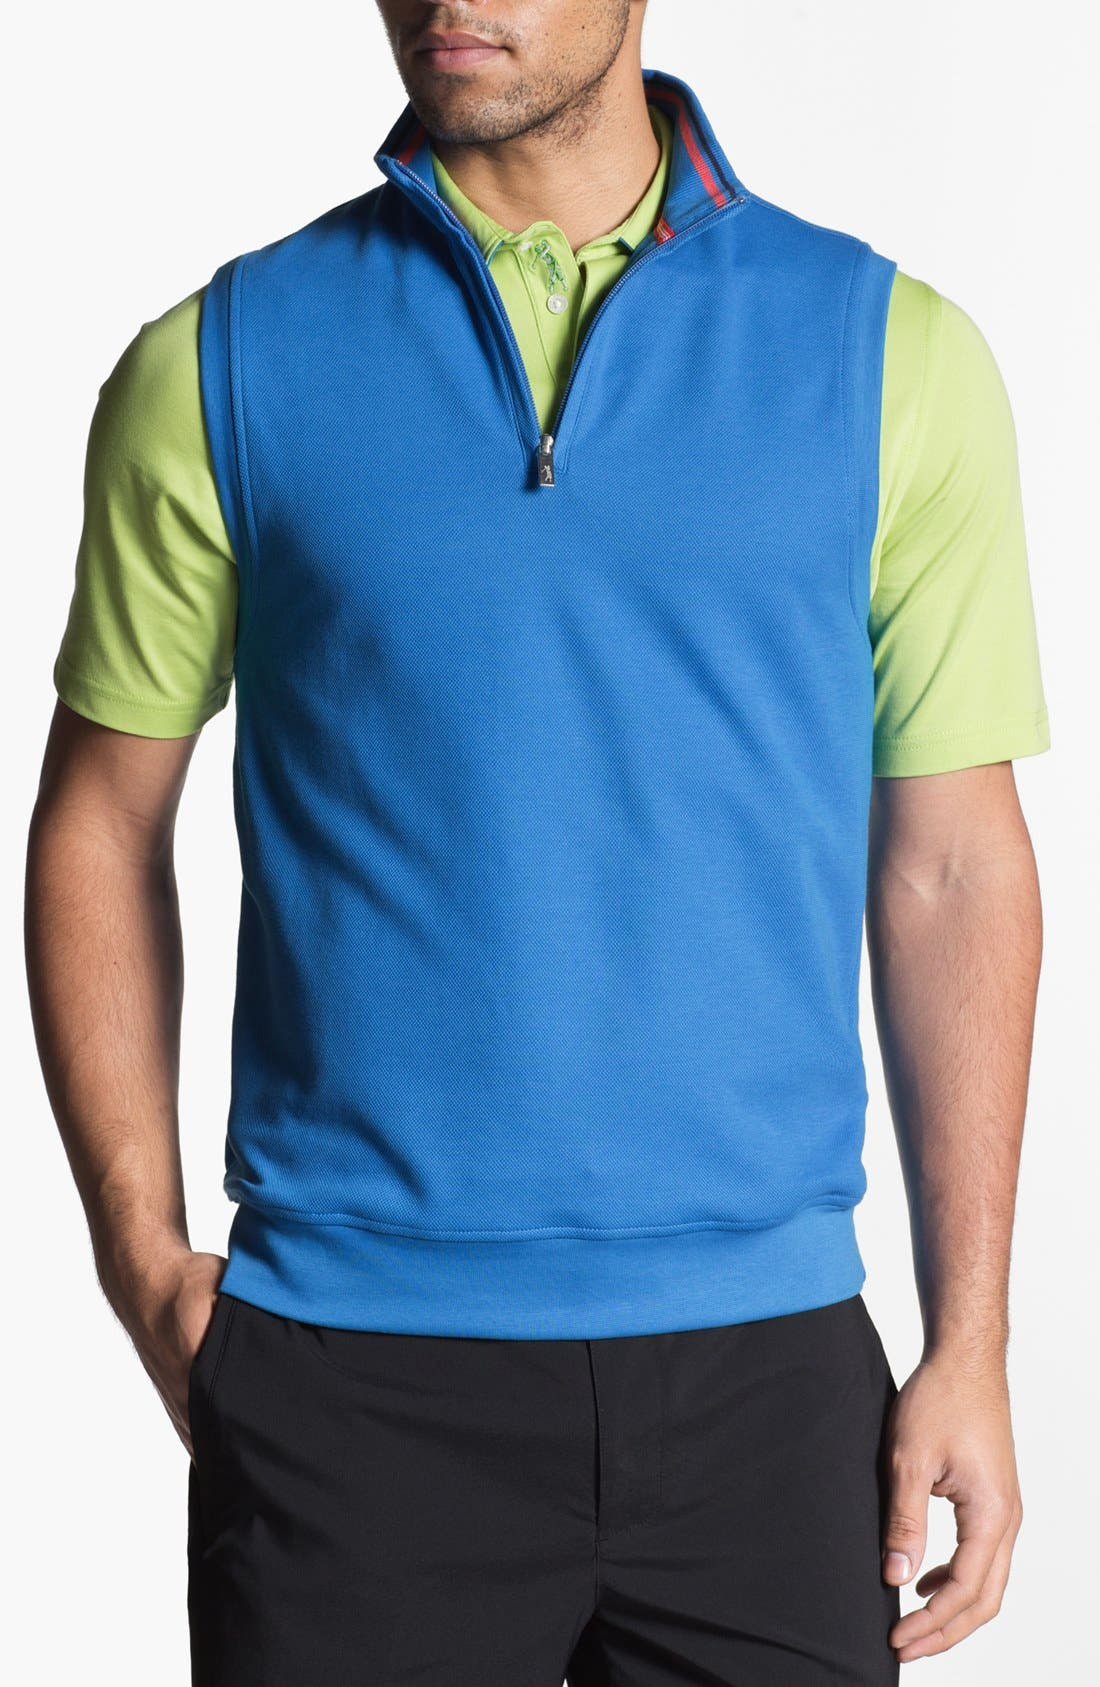 Main Image - Bobby Jones Quarter Zip Piqué Vest